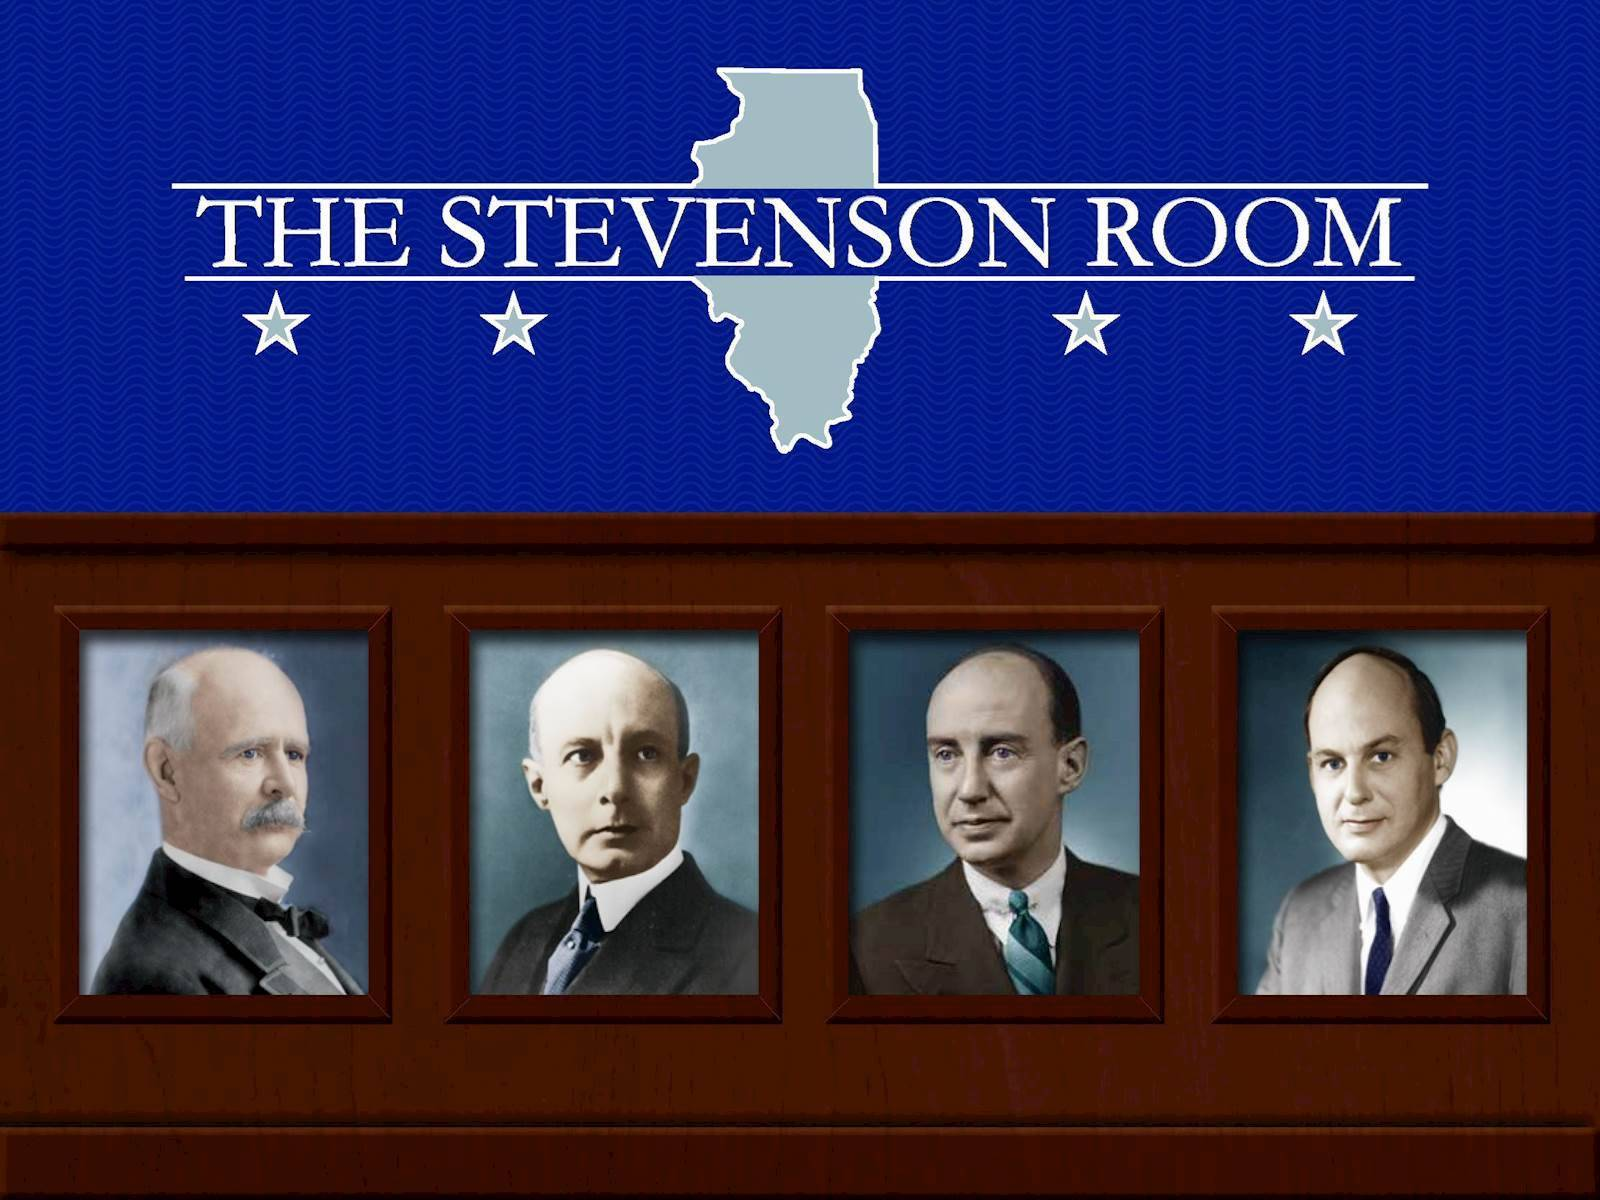 The Stevenson Room